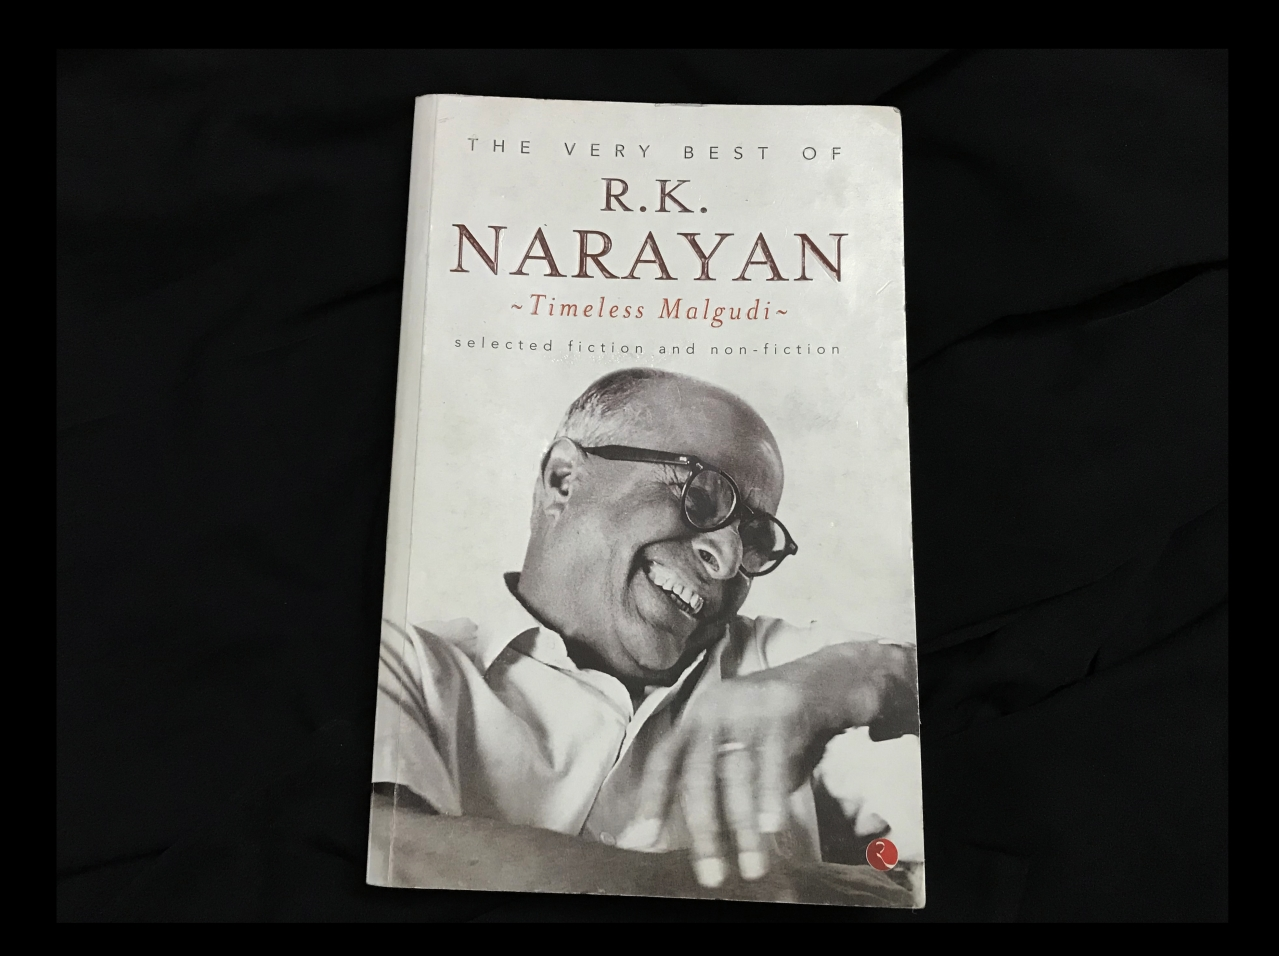 The Book, 'The Very Best of R K Narayan : Timeless Malgudi'